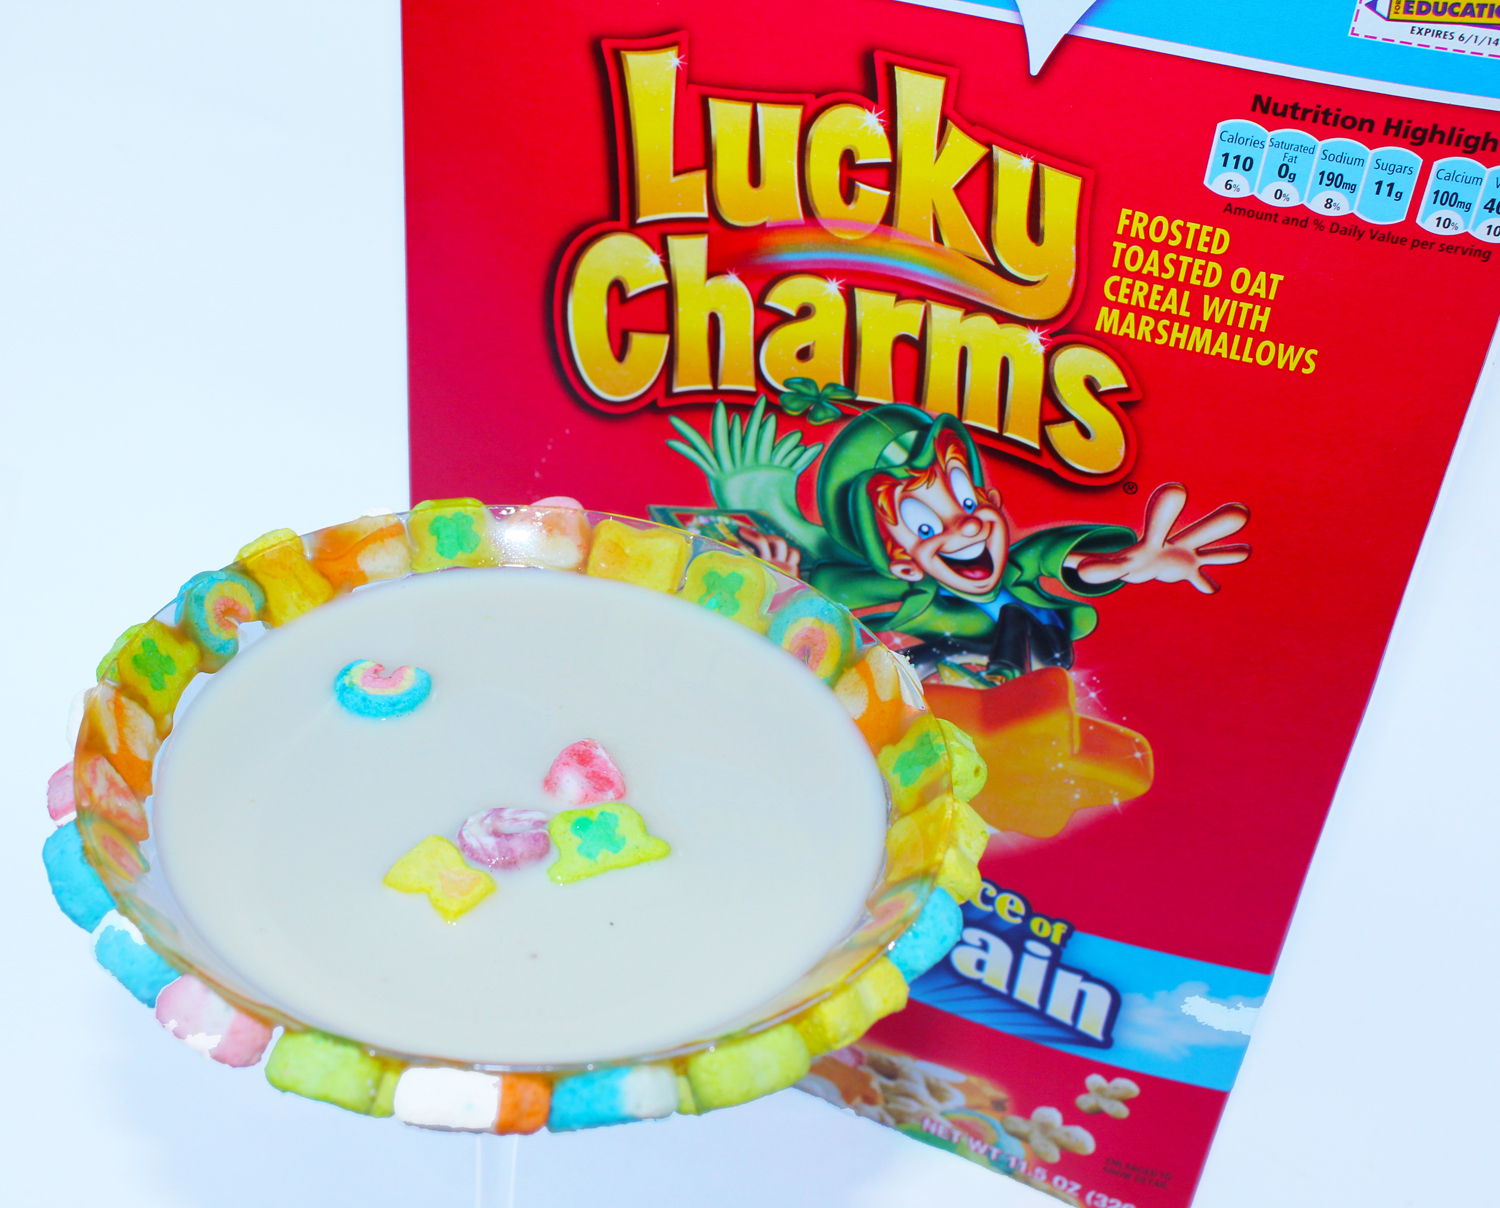 irish luck charms for interview